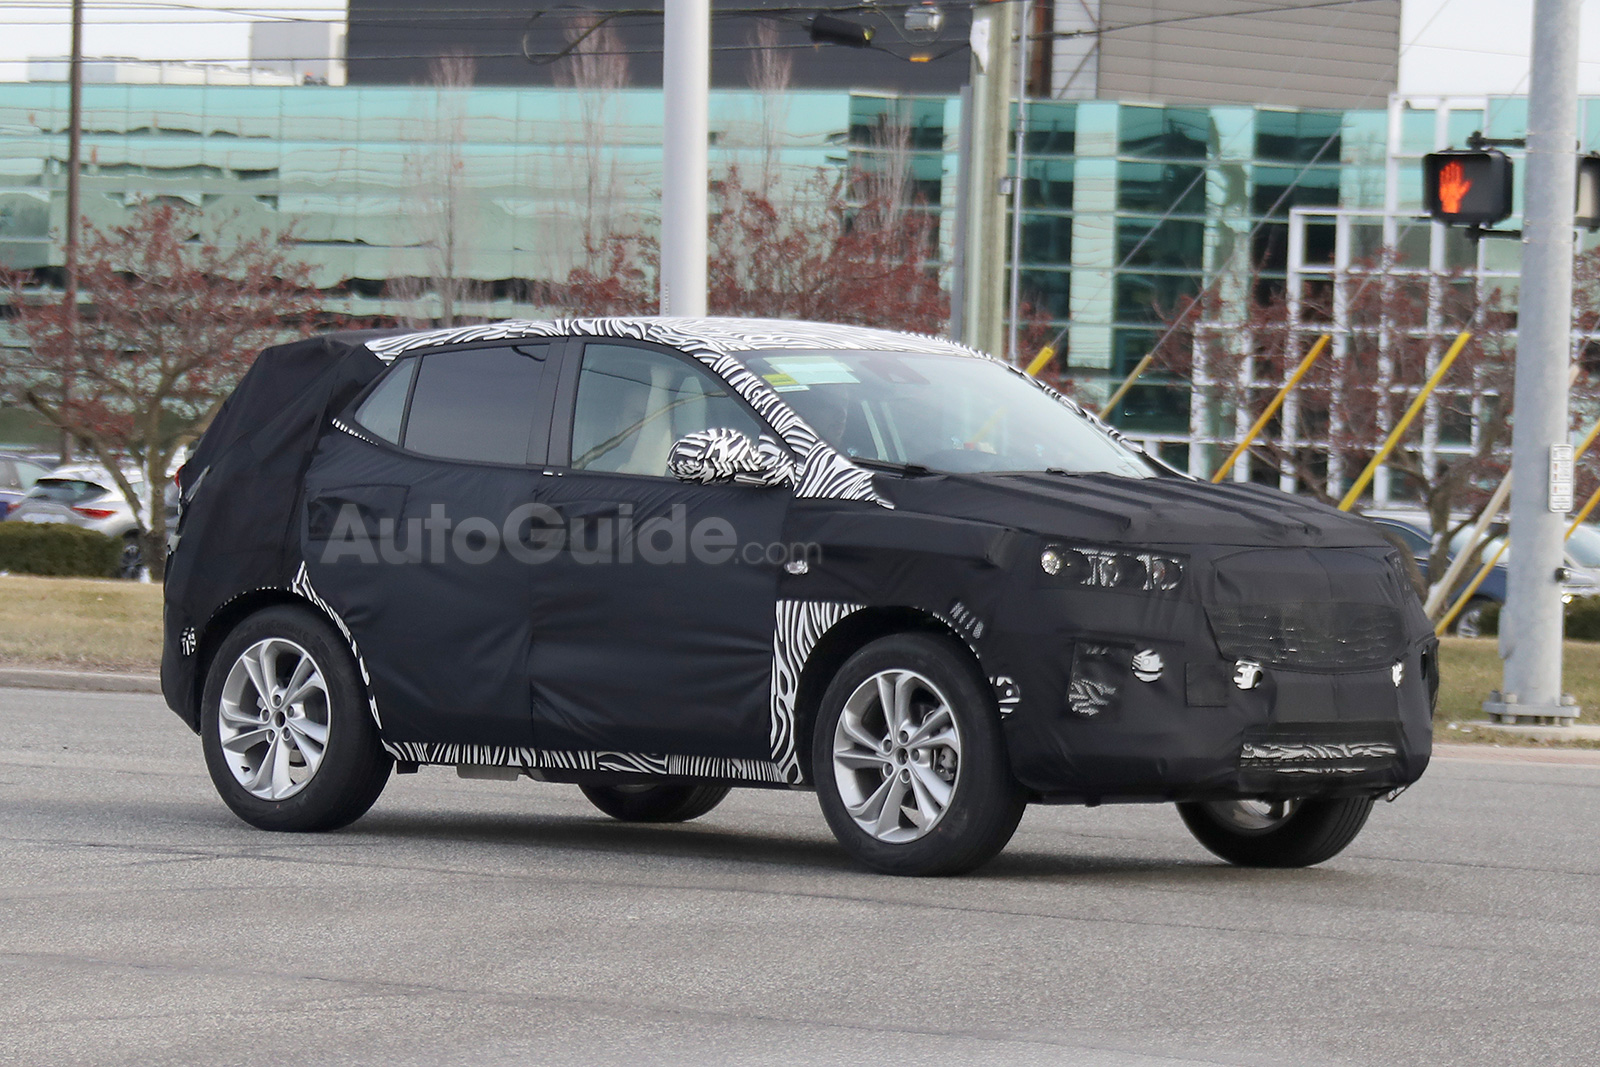 2020 Buick Encore Breaks Cover While Testing In Detroit Gm Inside News